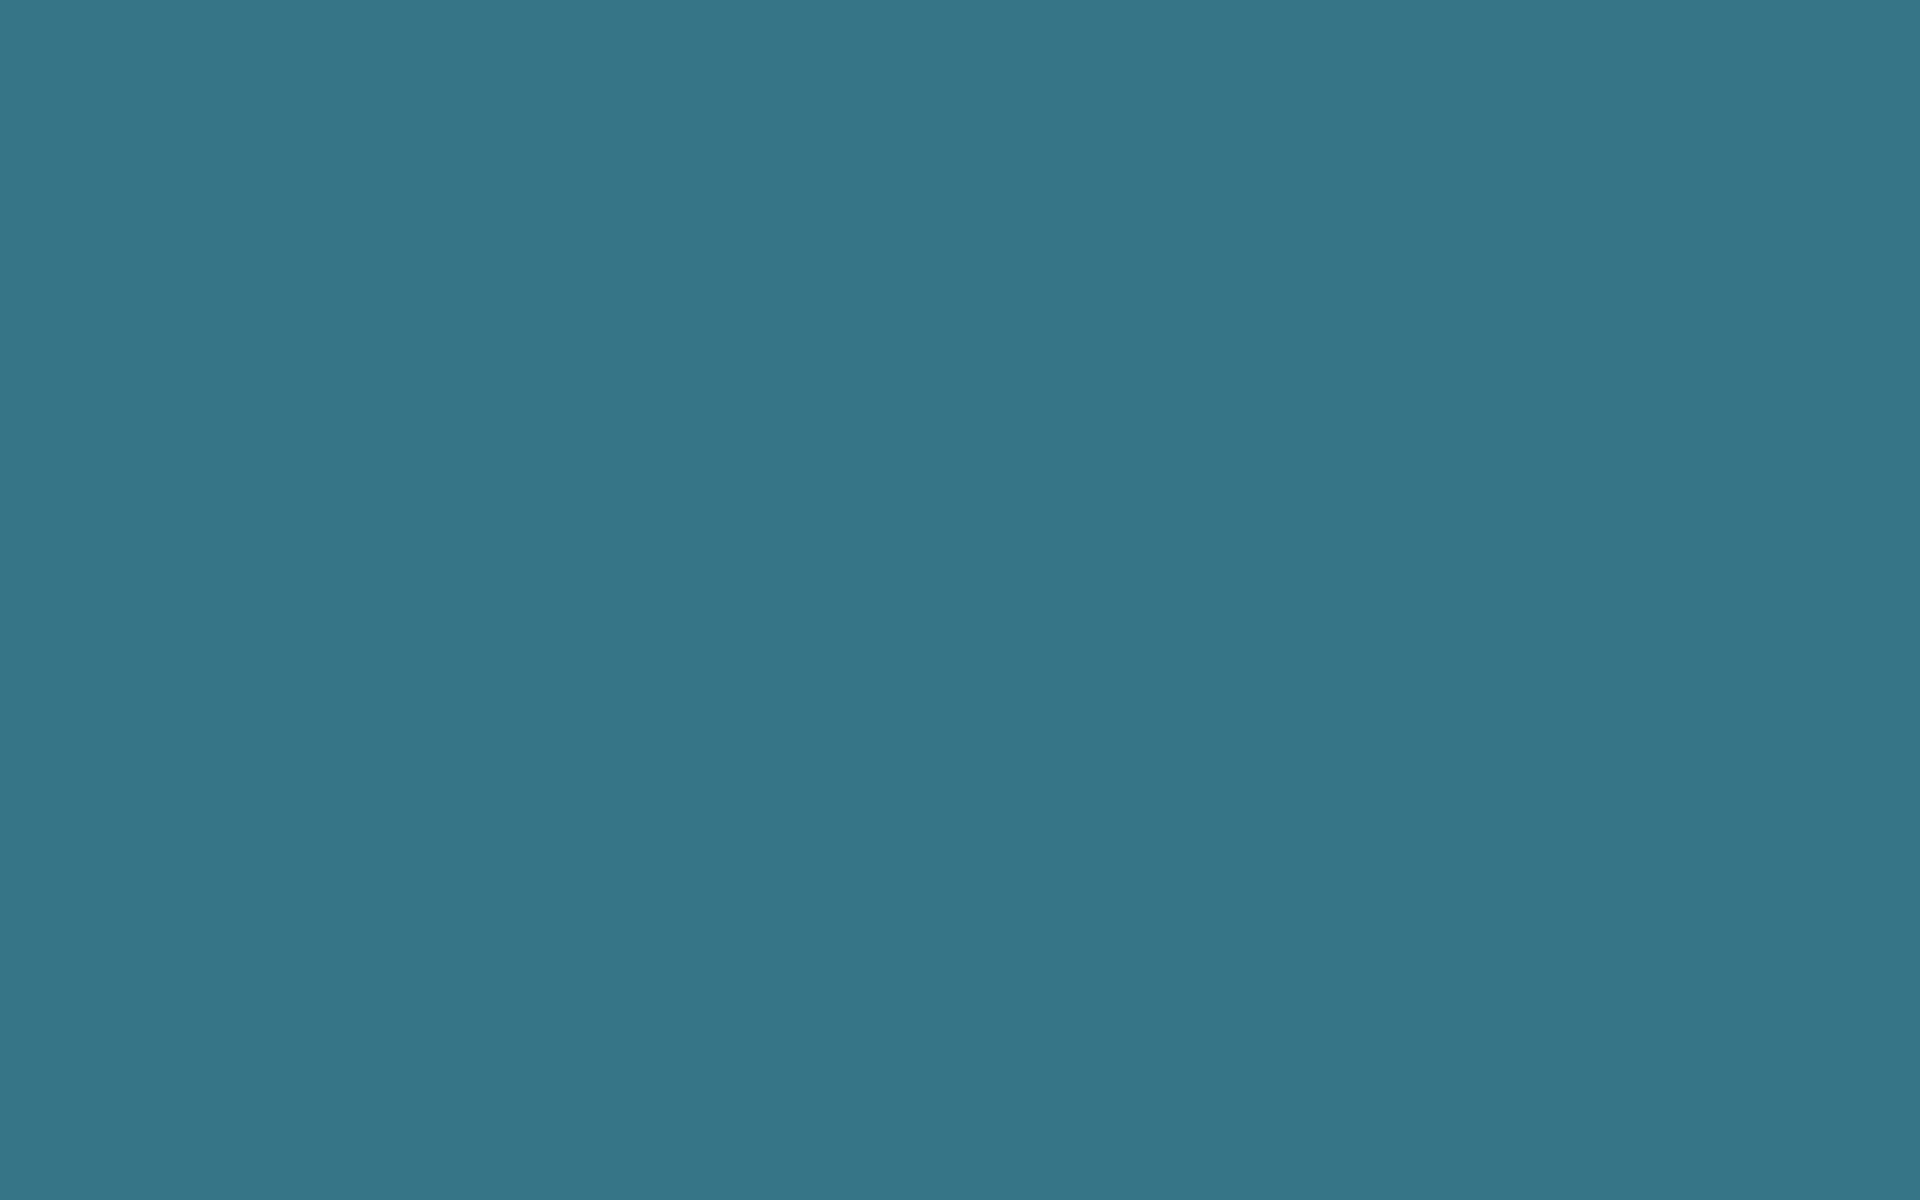 1920x1200 Teal Blue Solid Color Background